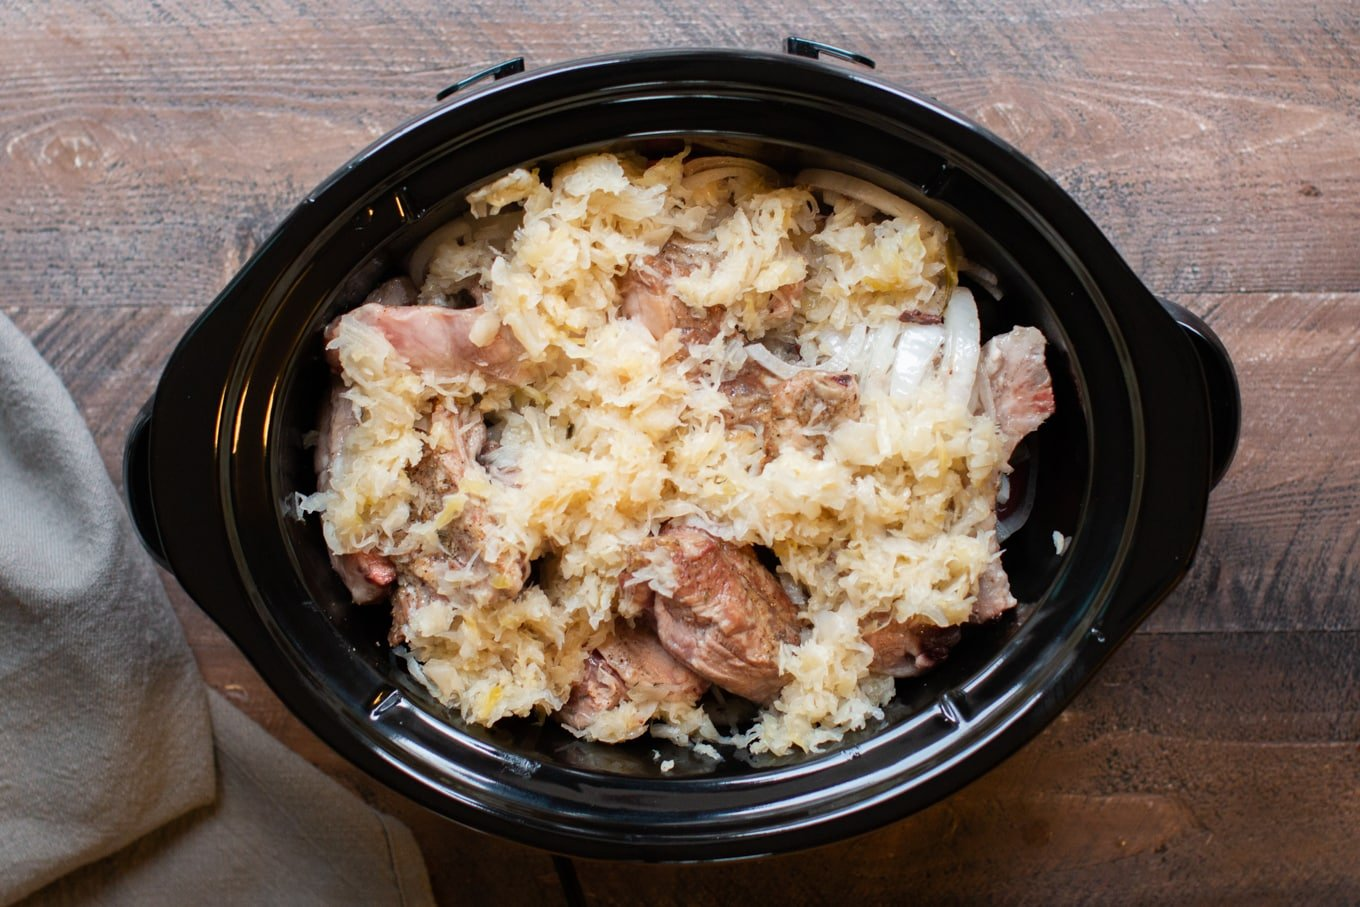 browned ribs, sauerkraut, potatoes, onion not yet cooked in a slow cooker.